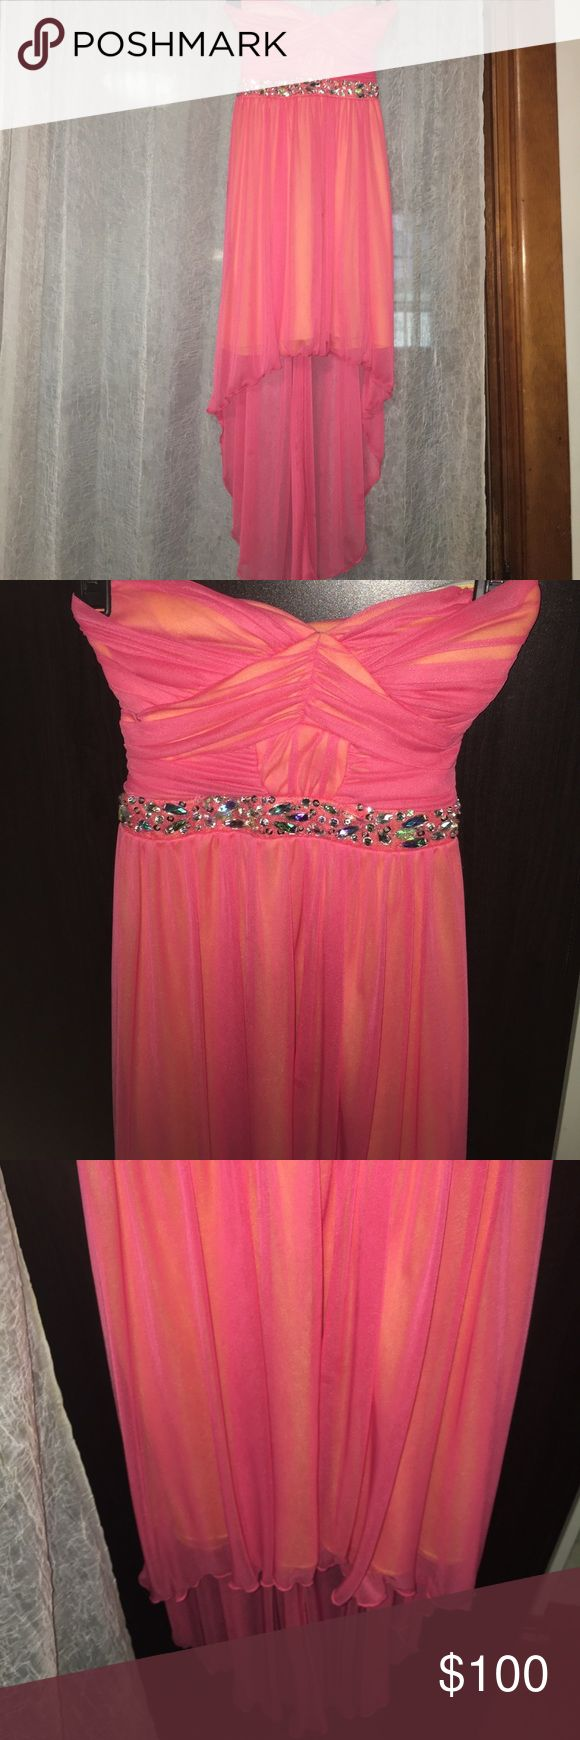 INEXPENSIVE HOMECOMING DRESS (NEED TP GET RID OF) Strapless bright hot coral pink dress bejeweled at midline. It is layered in the back as well! Willing to negotiate if needed! City Studio Dresses Prom